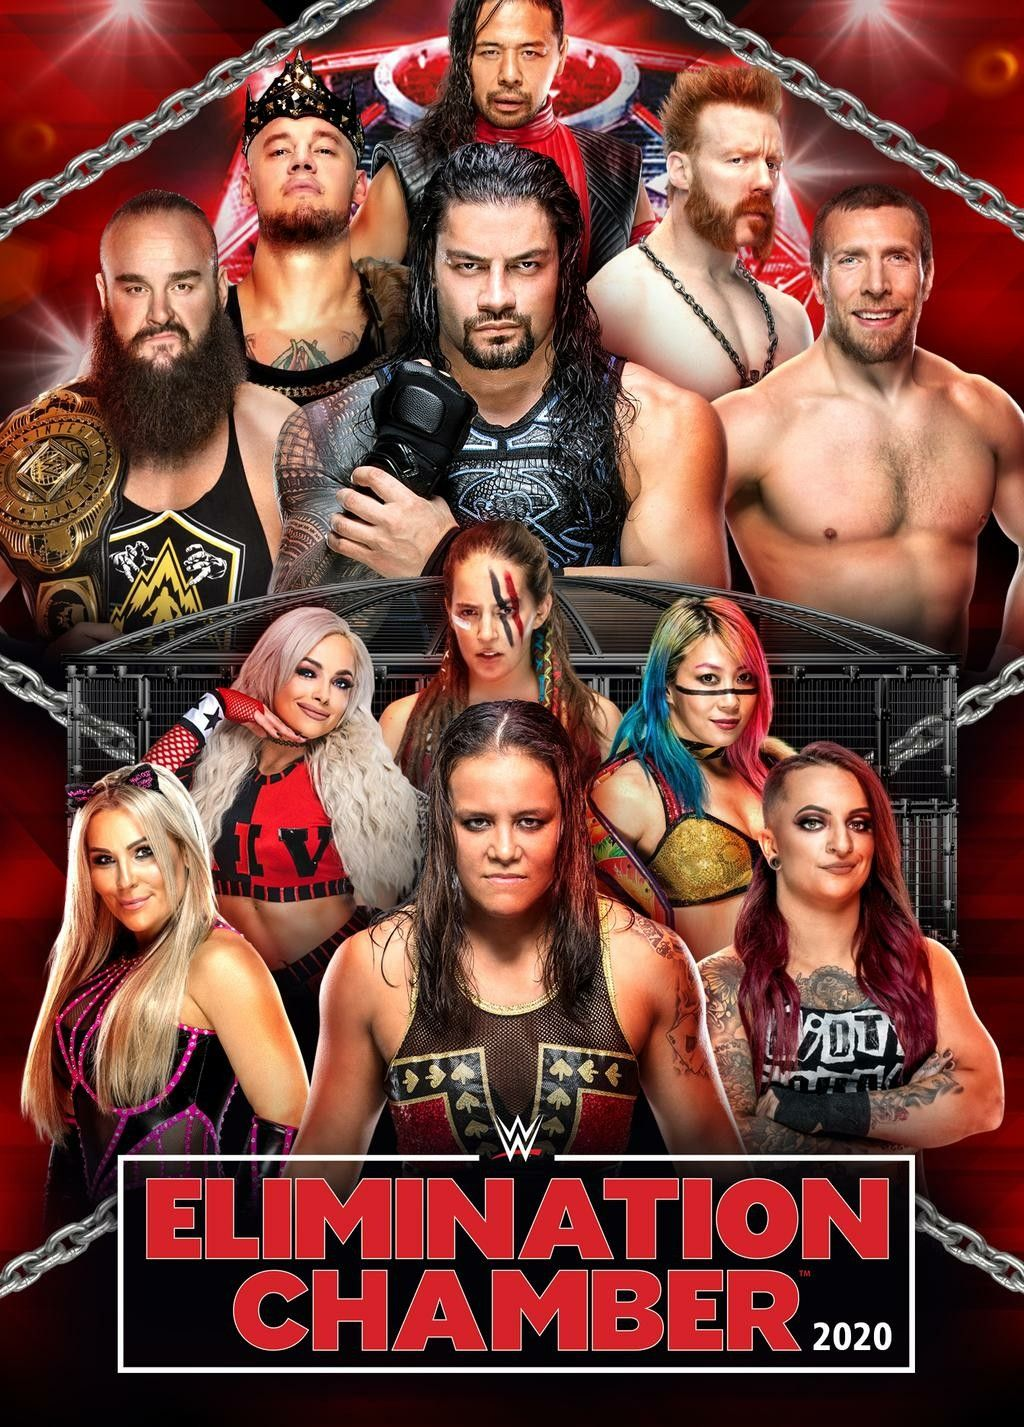 Wwe Elimination Chamber 2020 Poster By Chirantha On Dokter Andalan